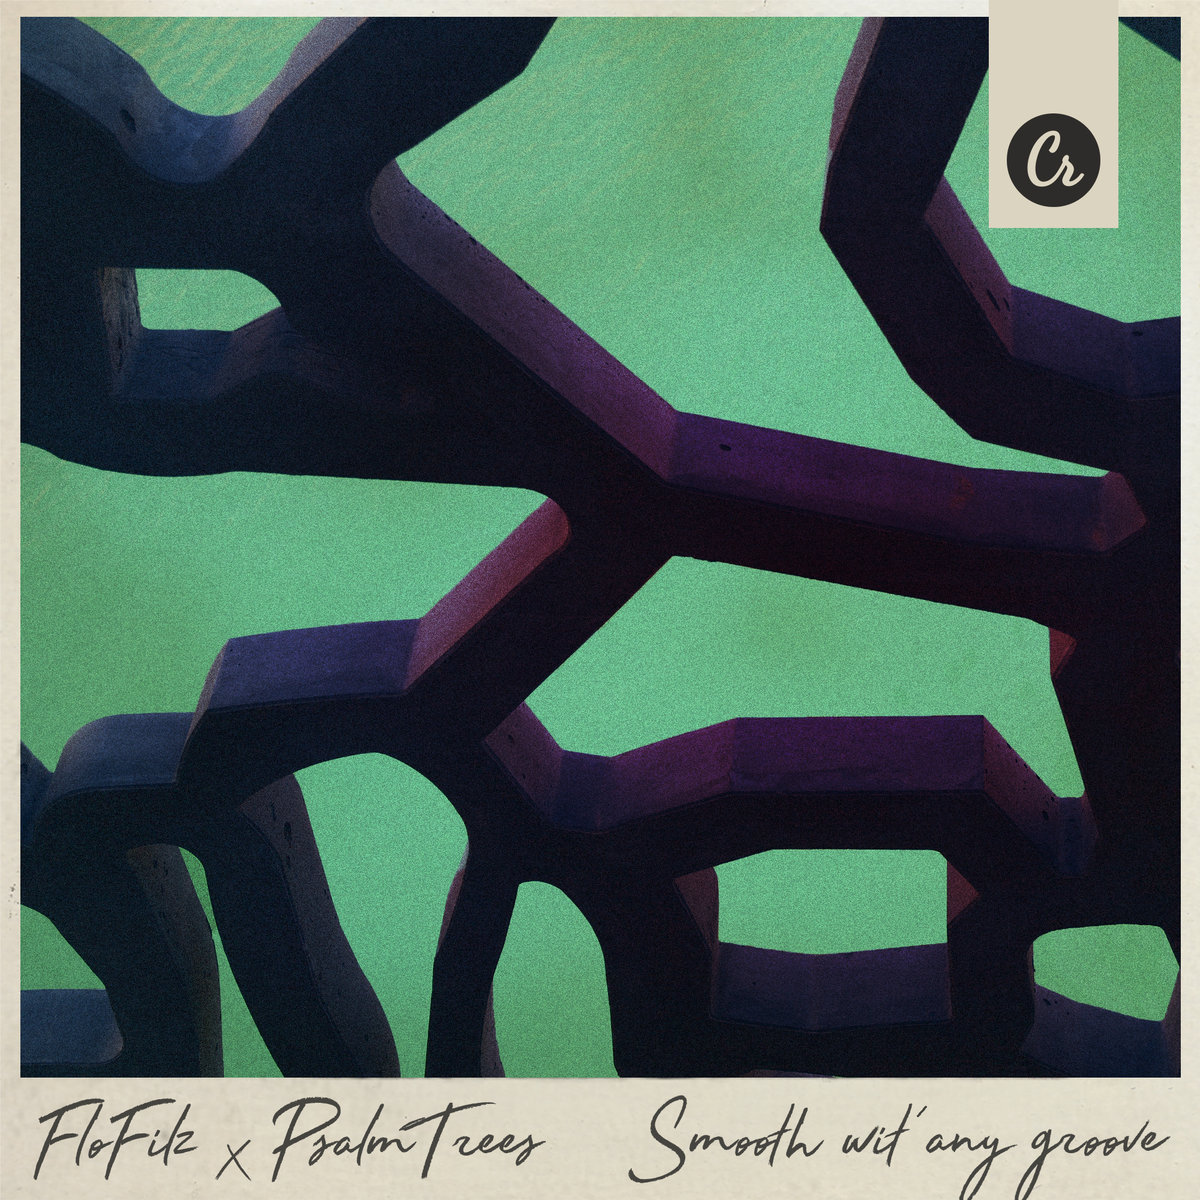 FloFilz x Psalm//Trees -  Smooth wit' any groove | Song of the Day über Chillhop